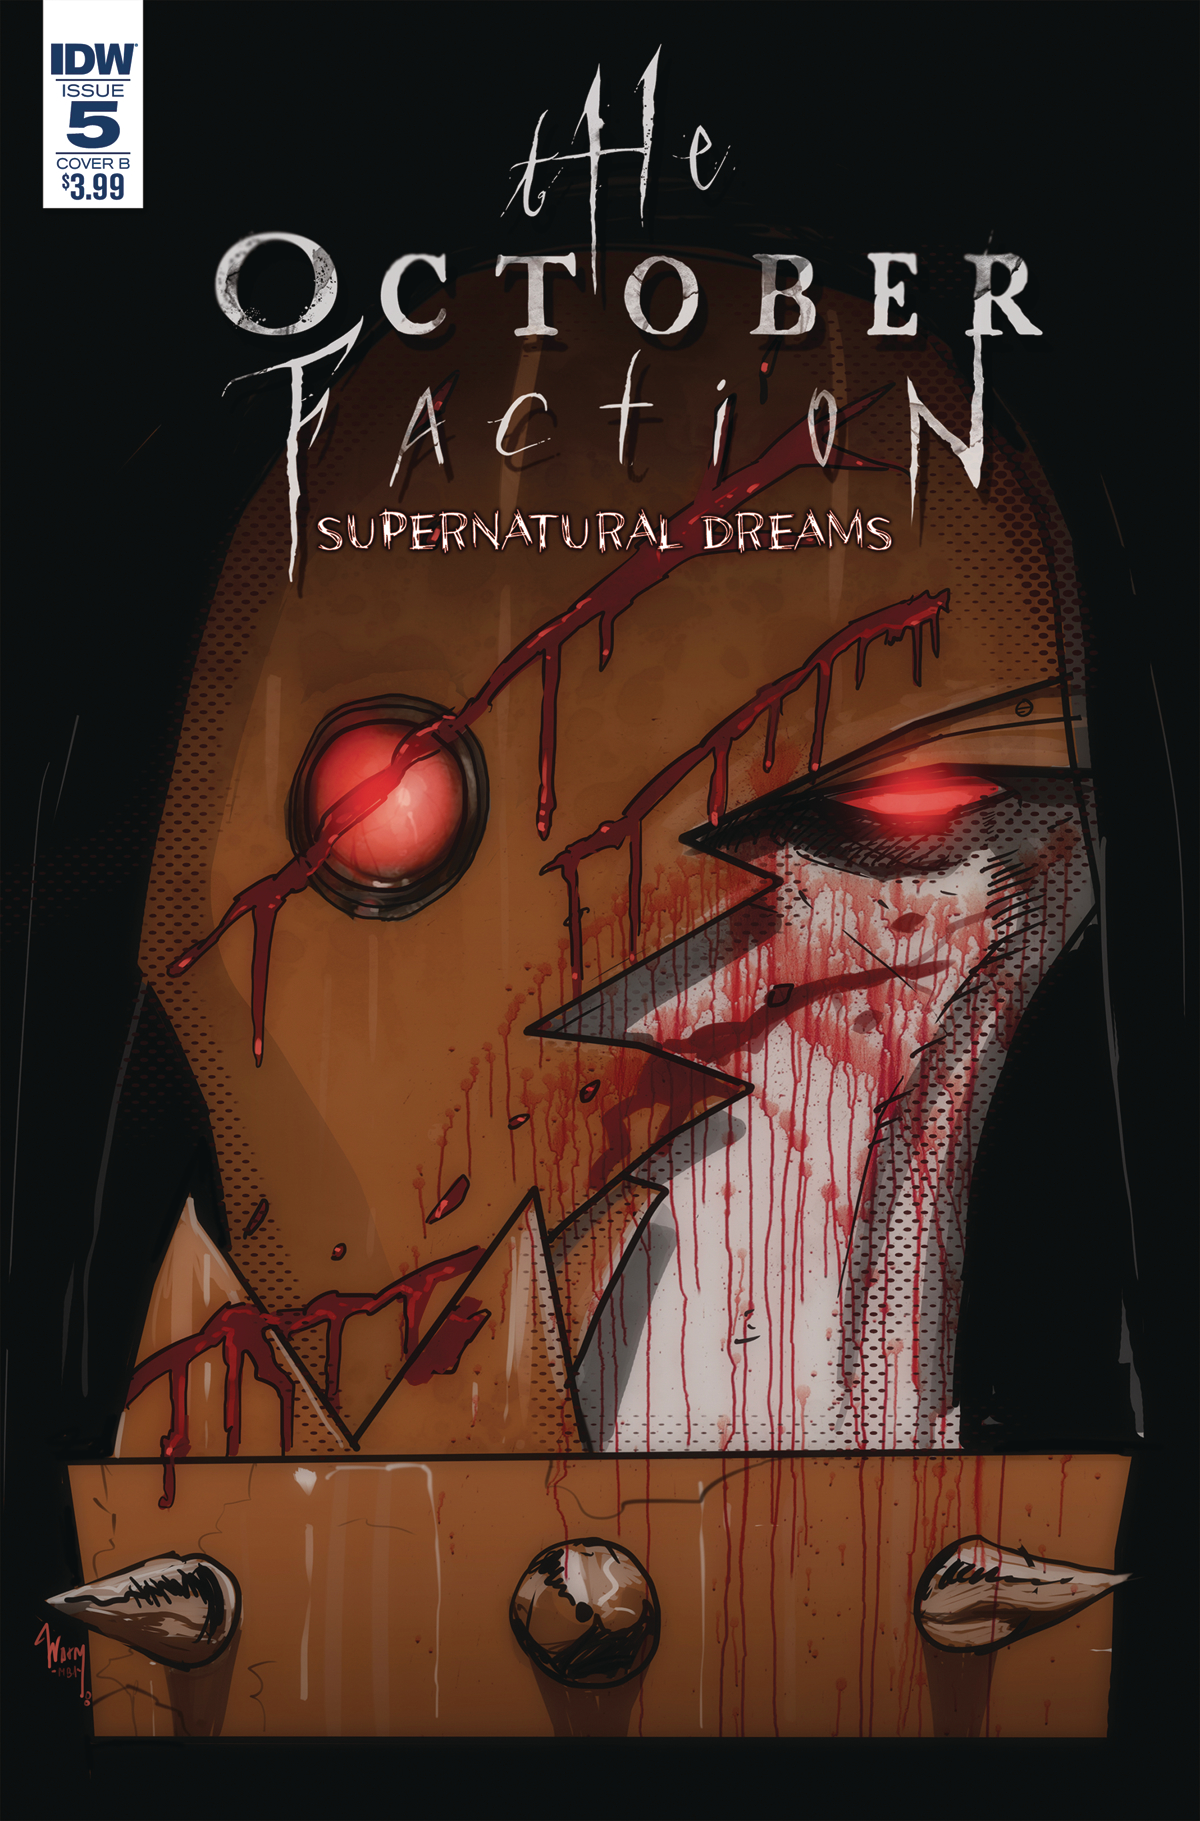 OCTOBER FACTION SUPERNATURAL DREAMS #5 CVR B WORM